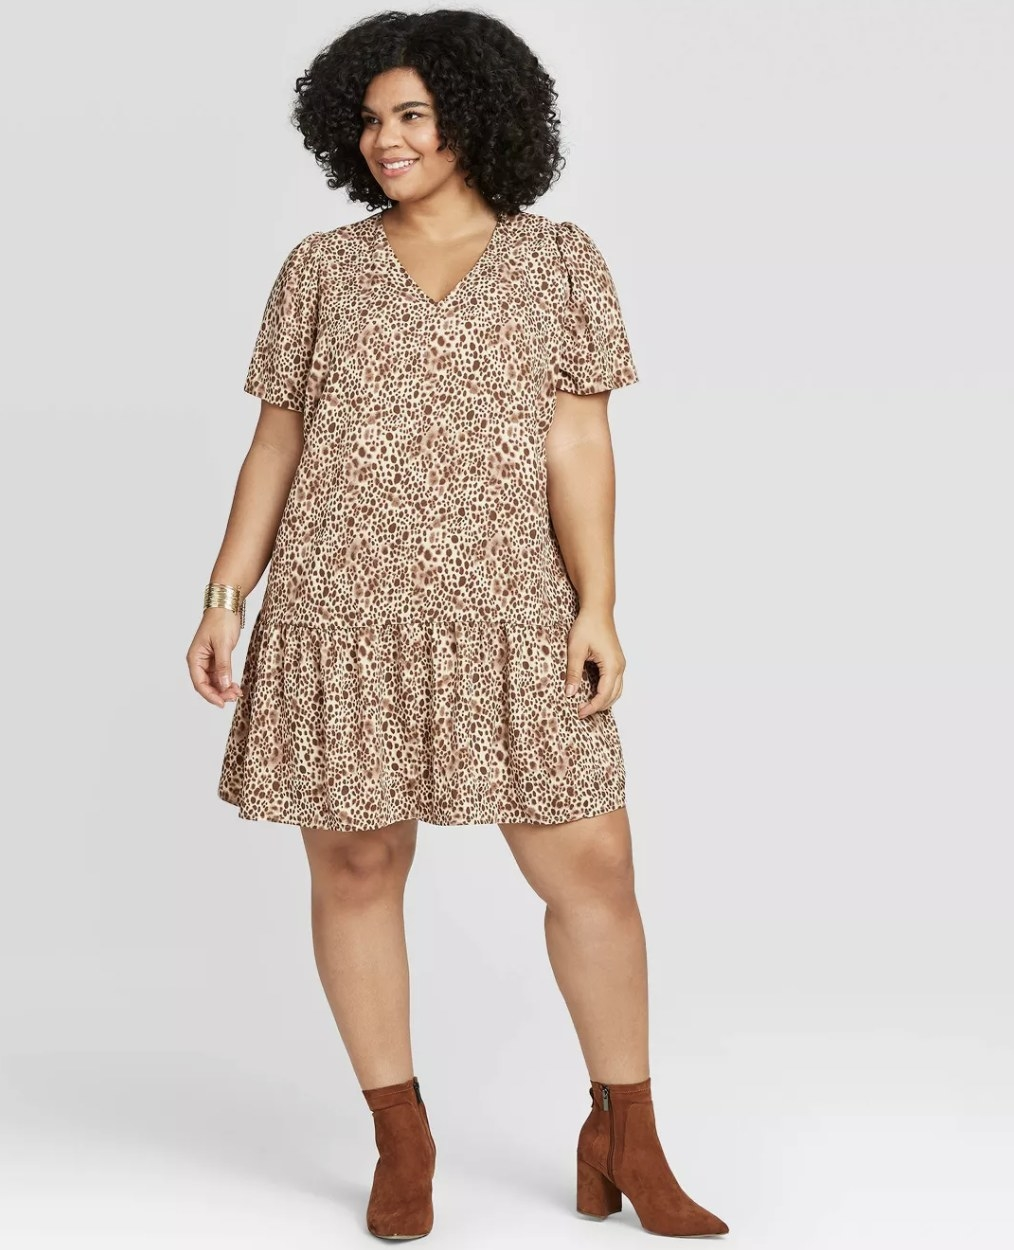 Model wearing the dress in a brown spotted print